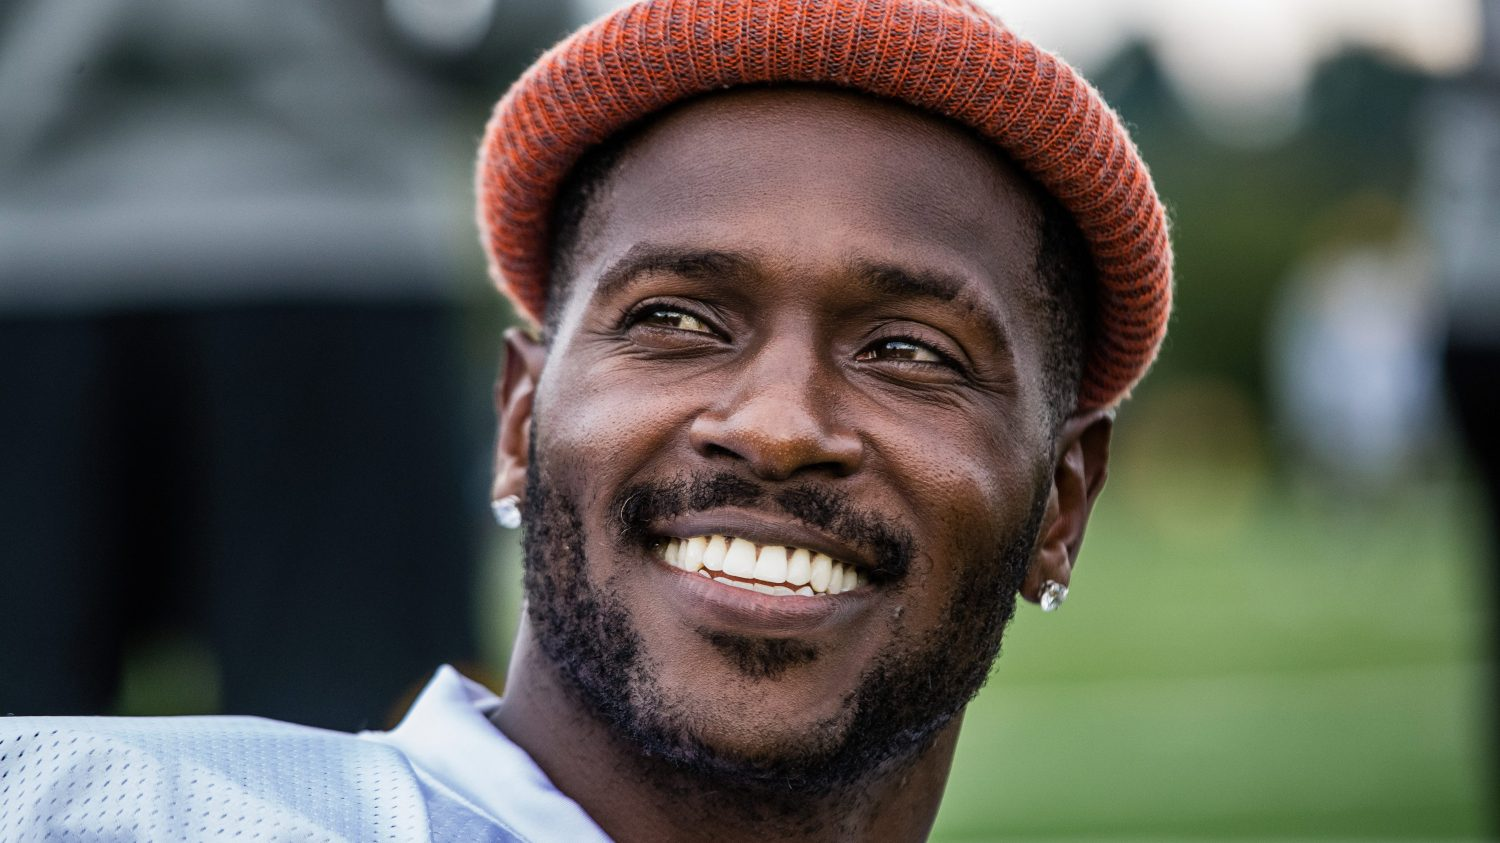 Antonio Brown is an Instagram All-Pro. But is that the full picture? — The Undefeated